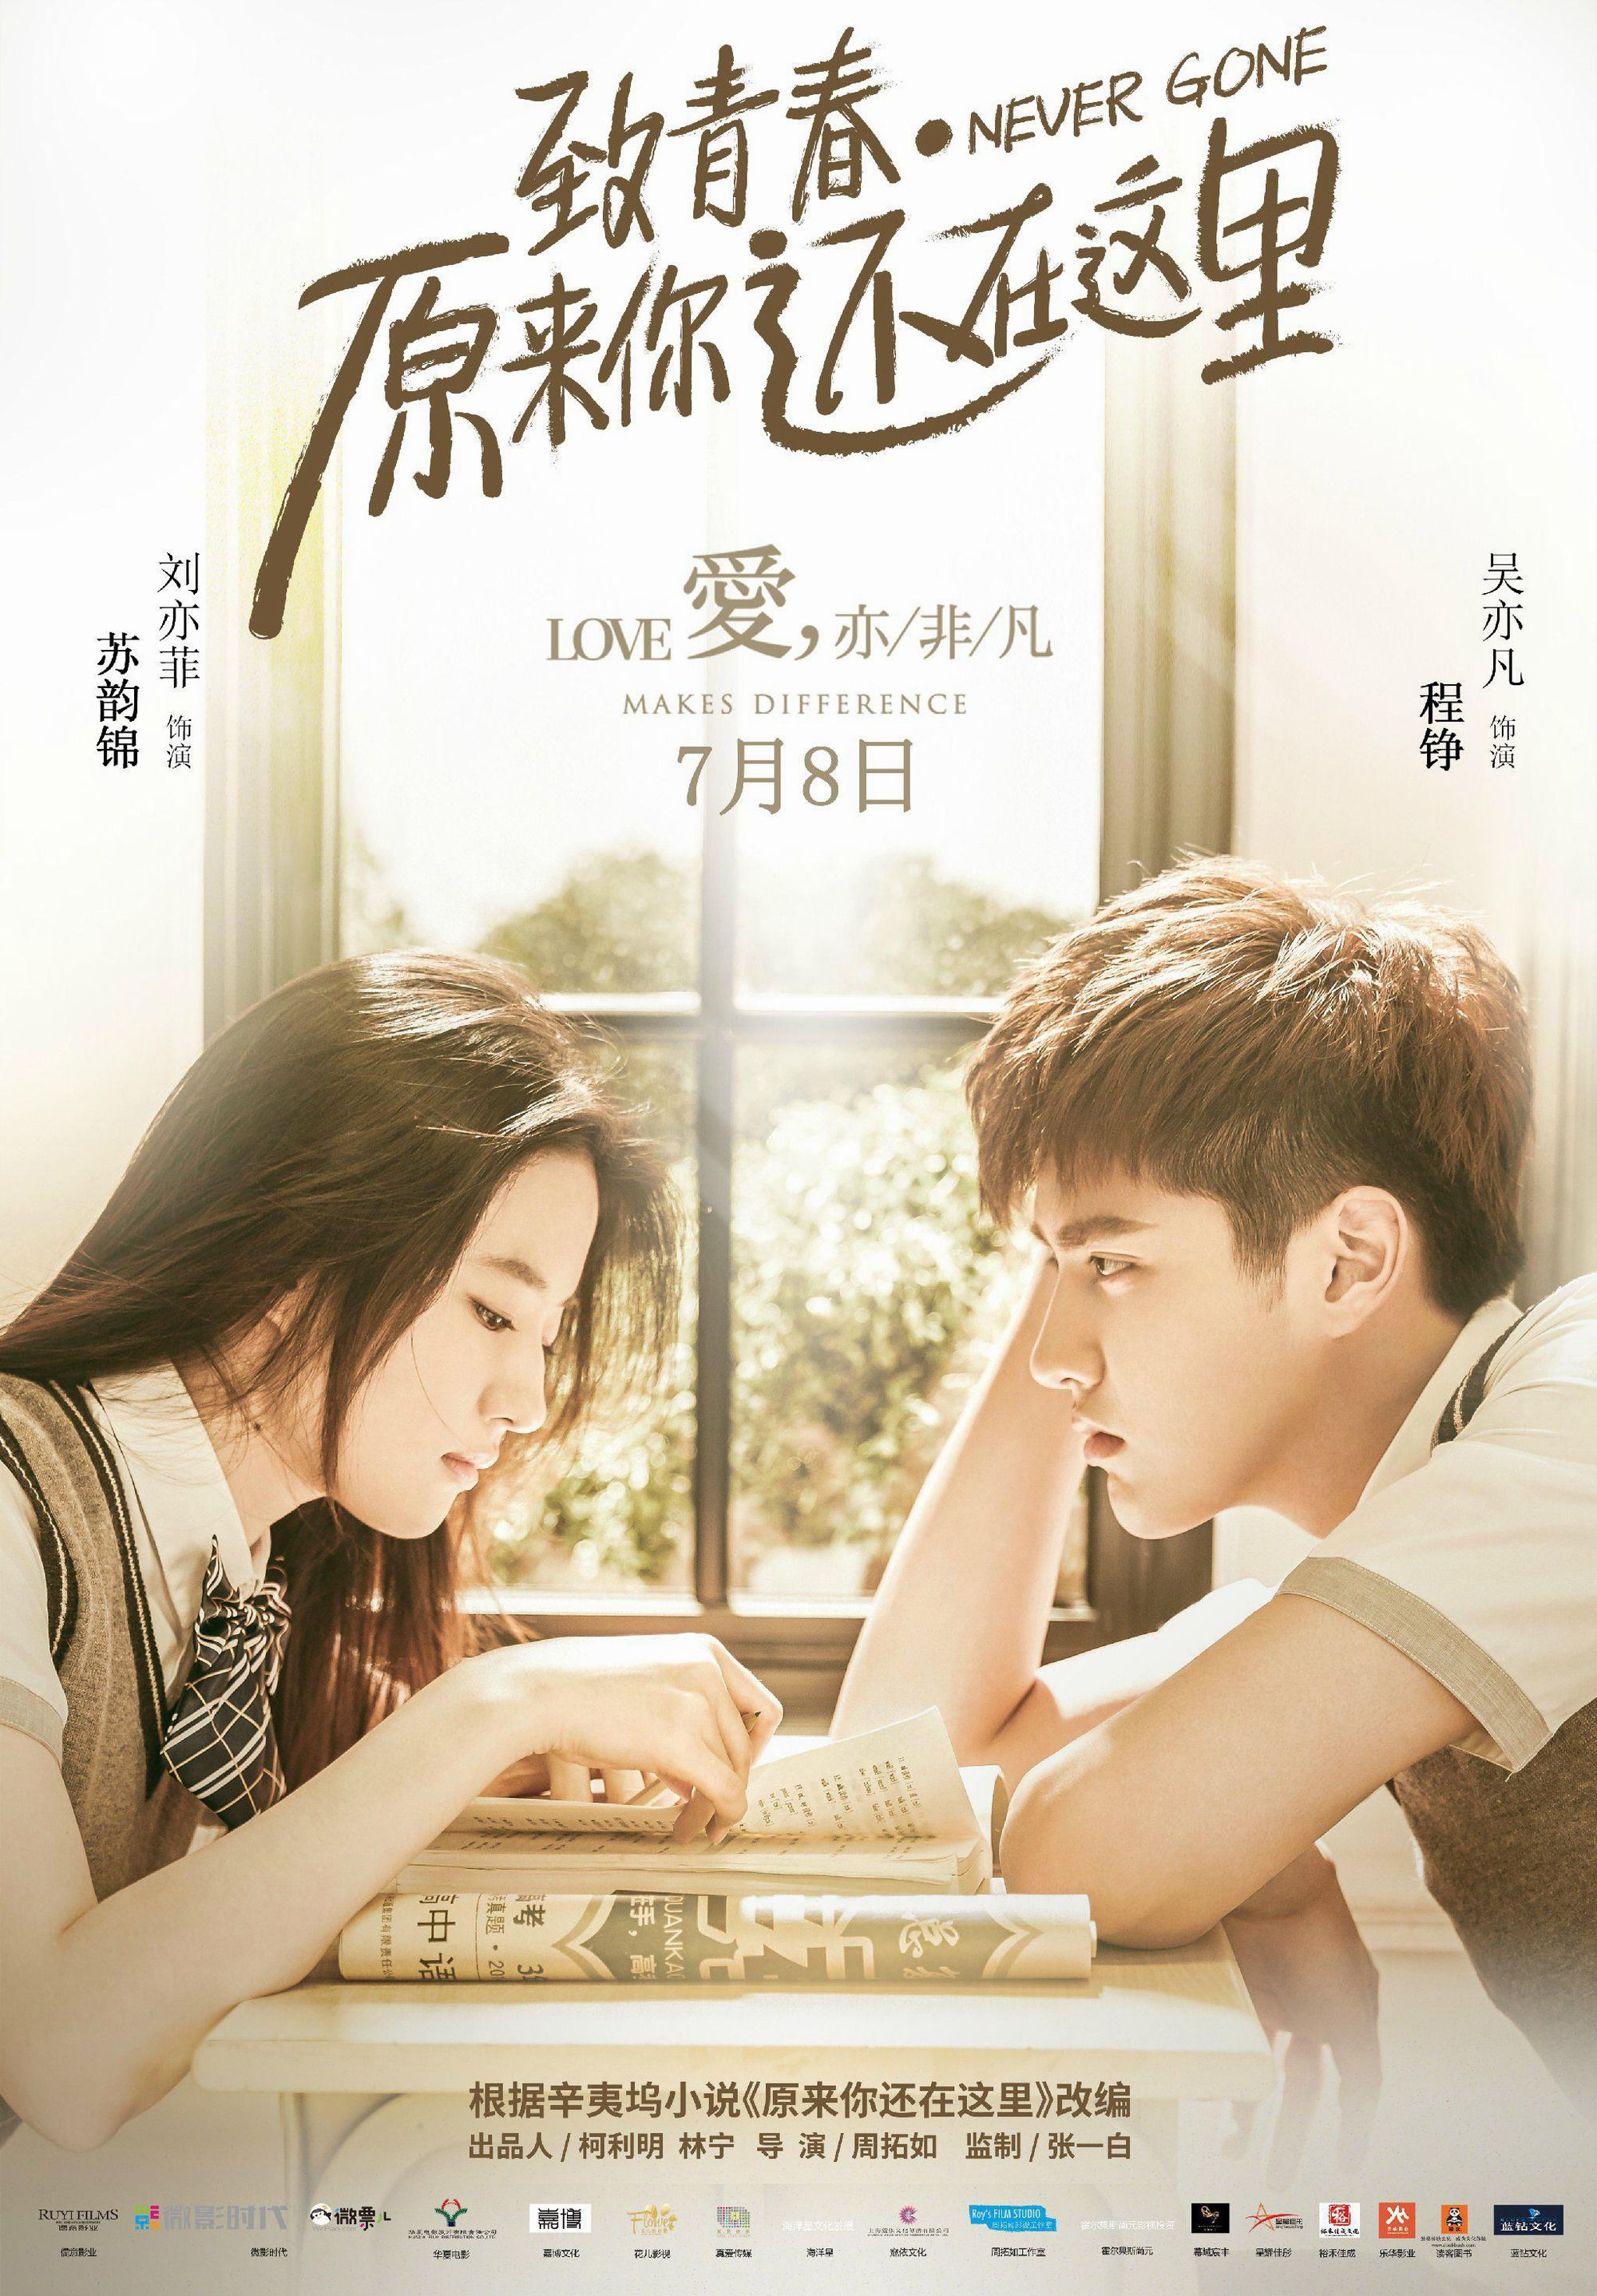 So Young 2 Never Gone 2016 Korean Drama Tv Chinese Movies Romantic Movies